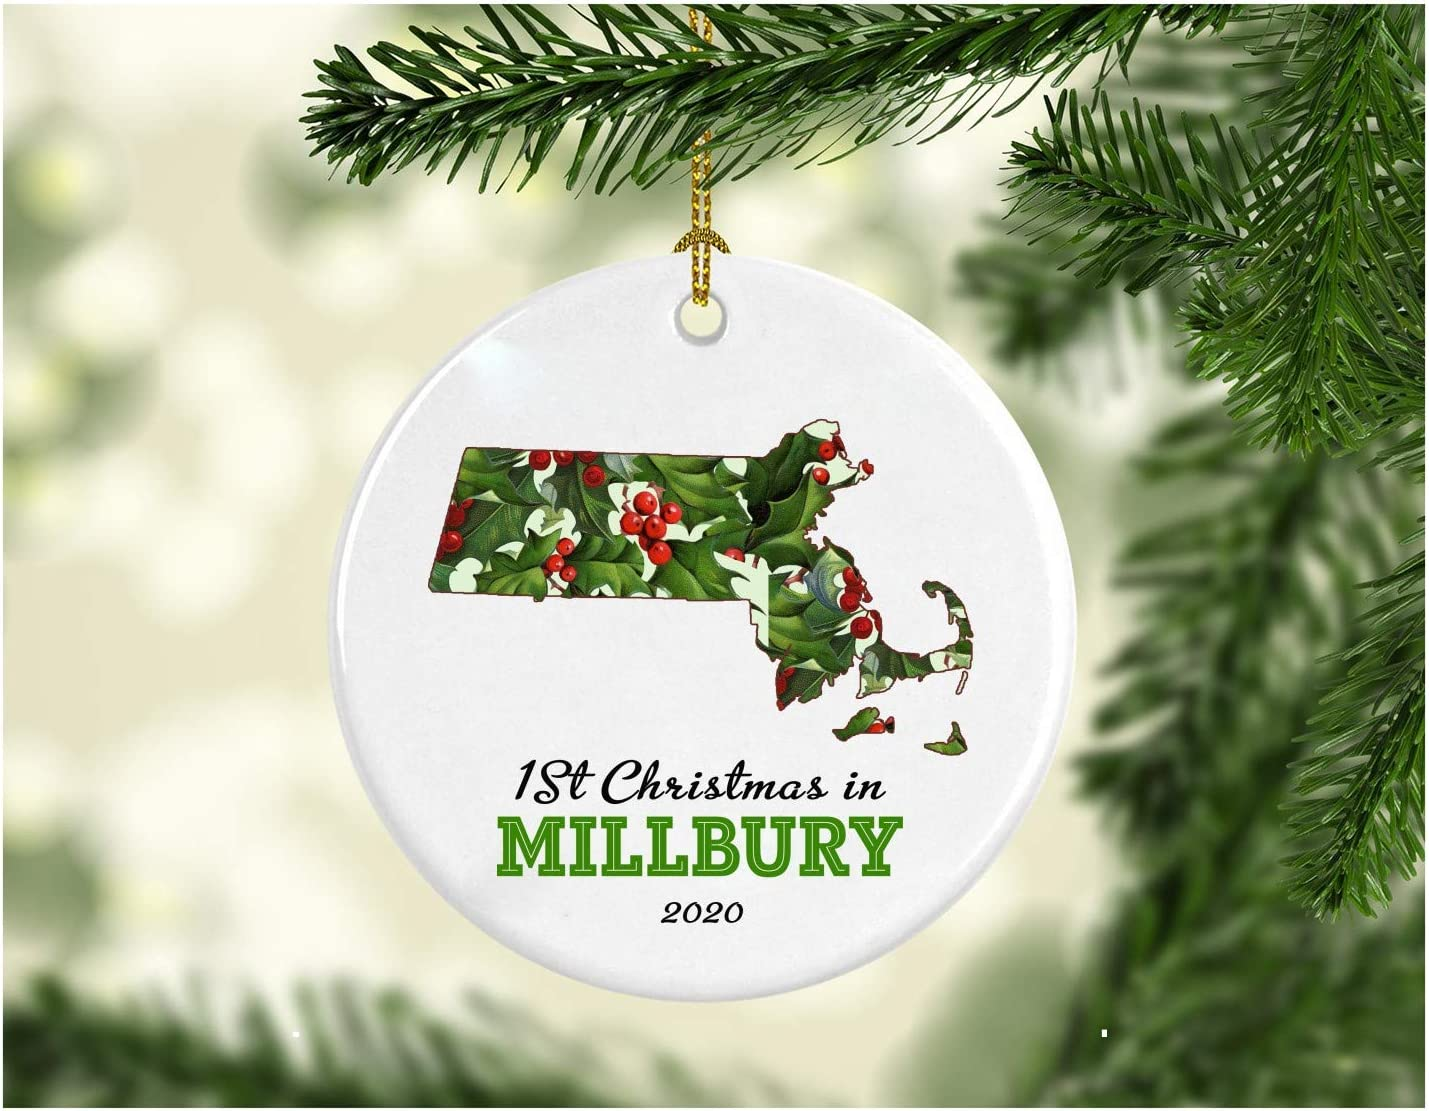 New Home Christmas Ornament 2020 Millbury Massachusetts First Christmas in Our New House Housewarming Holiday Gift Pretty Rustic Christmas in Our New Home MDF Plastic 3